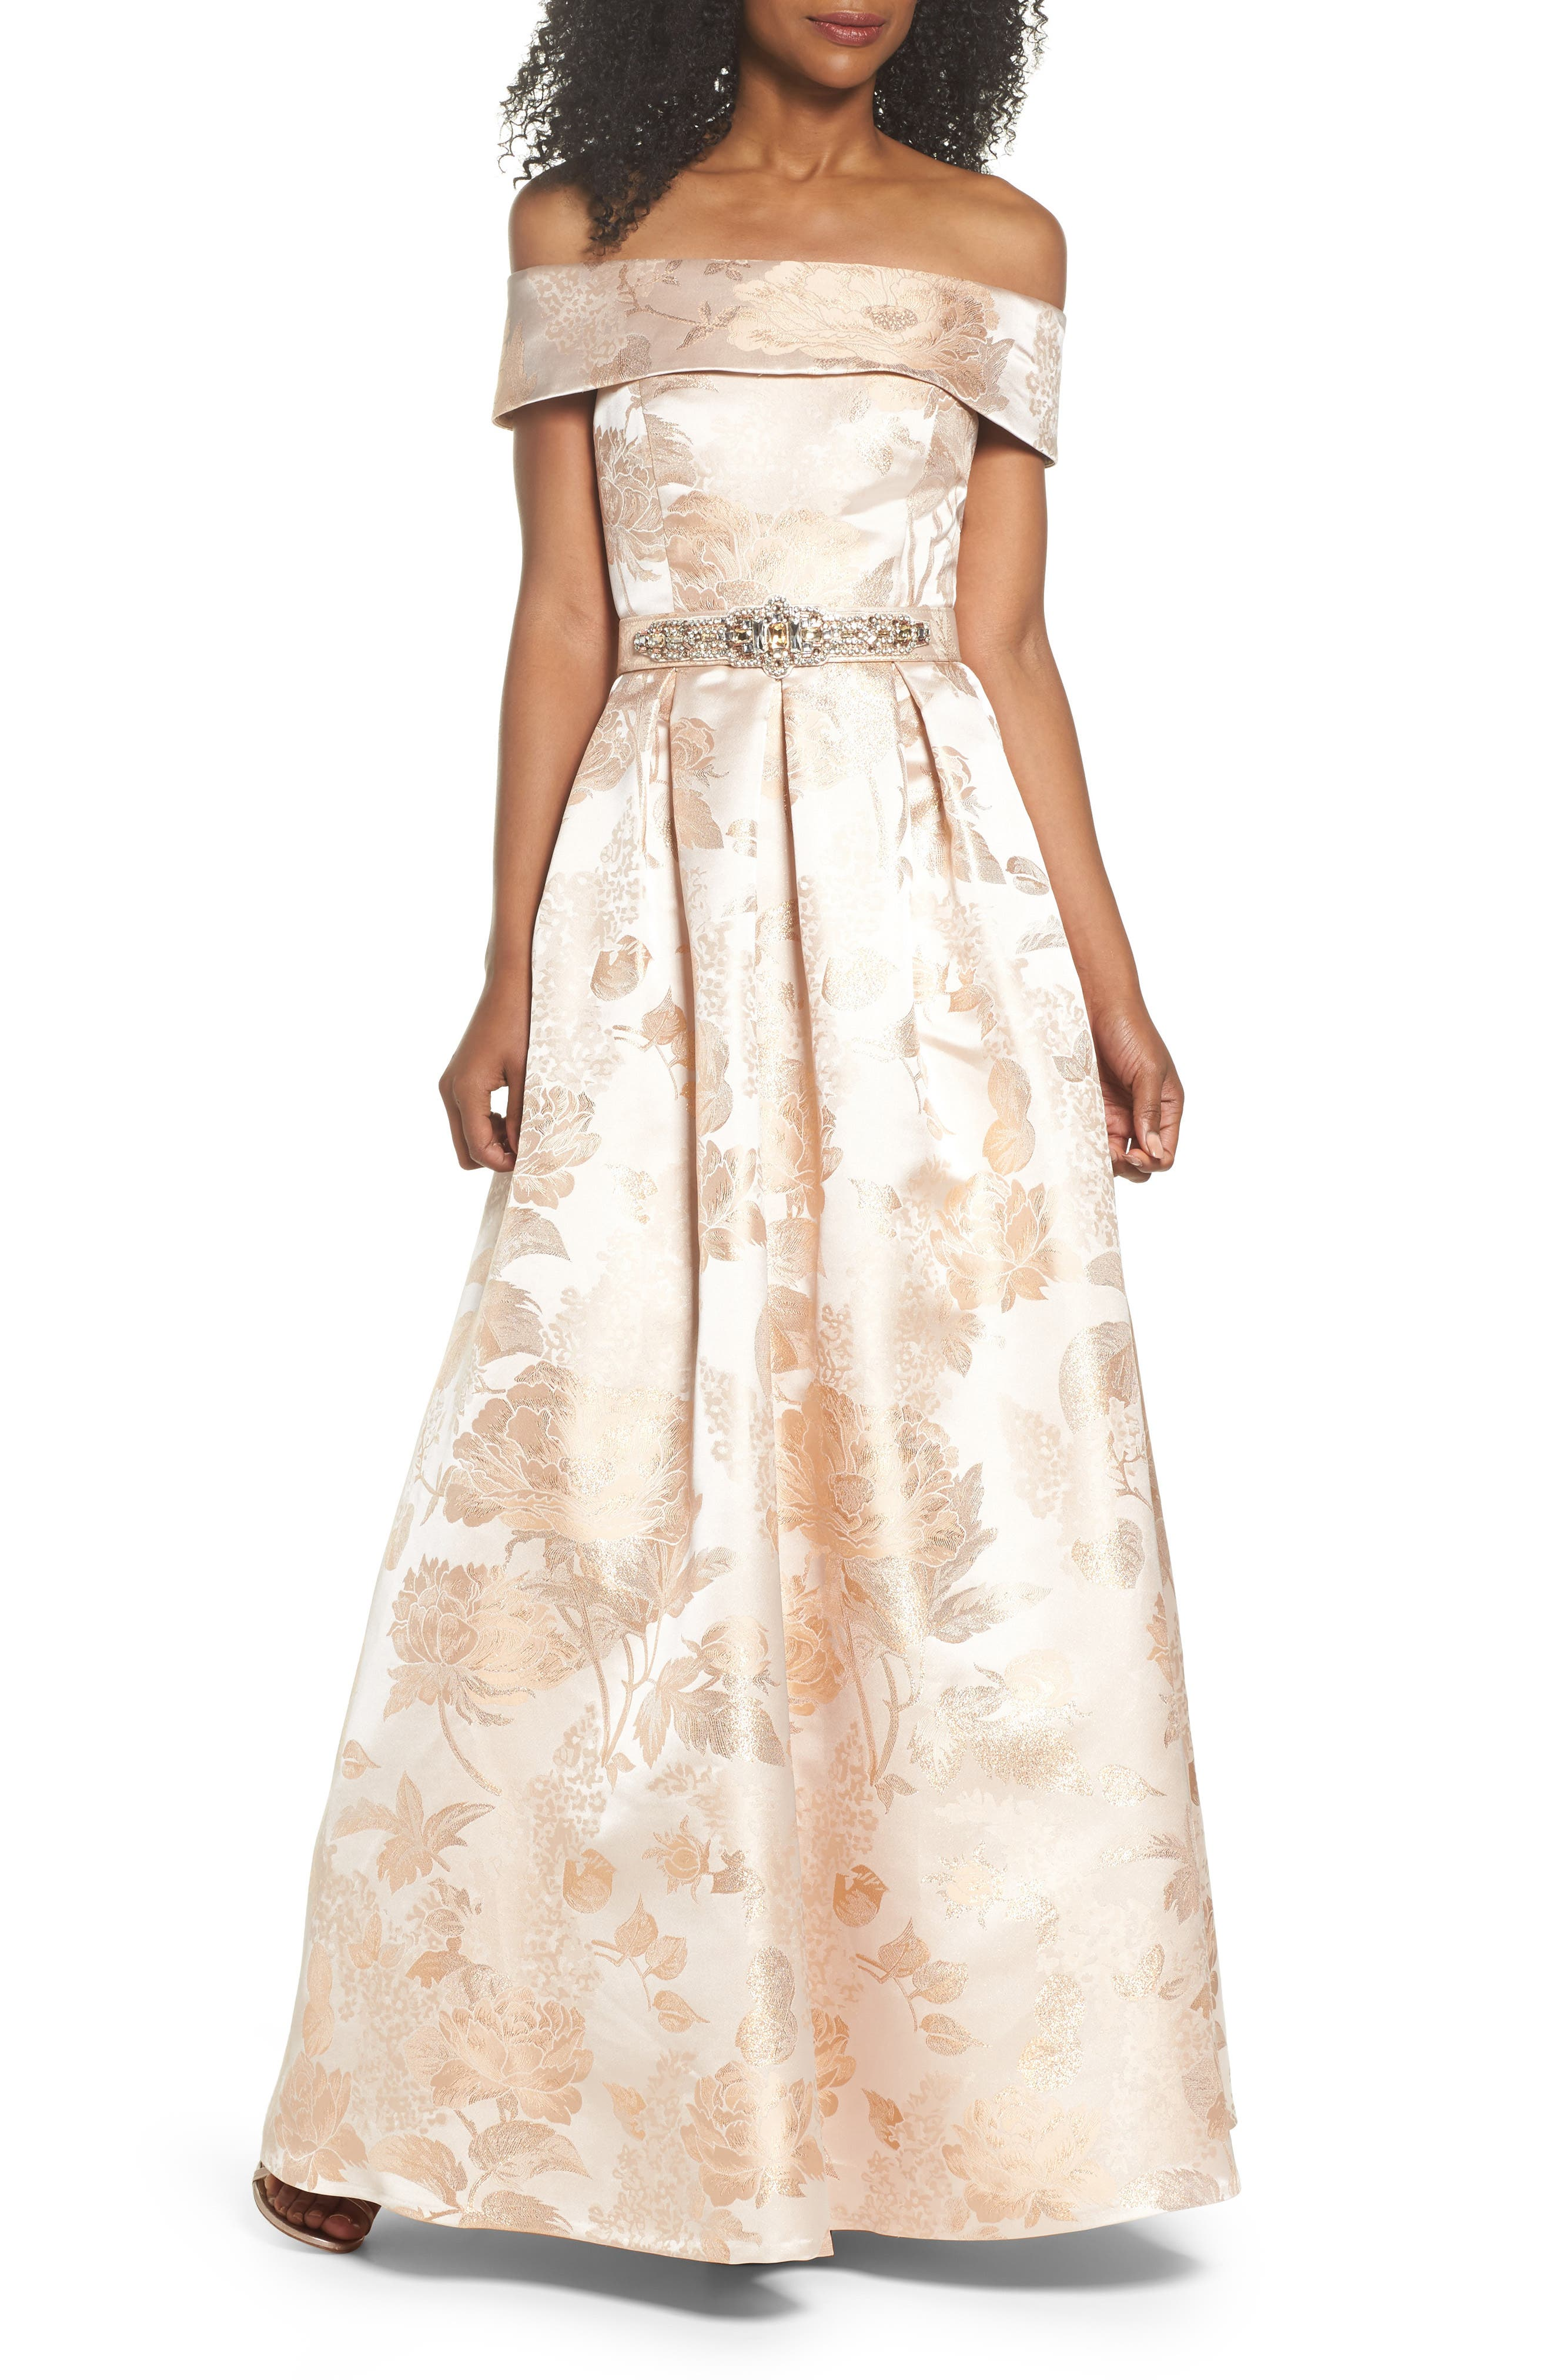 Belted Off the Shoulder Jacquard Ballgown,                             Main thumbnail 1, color,                             251